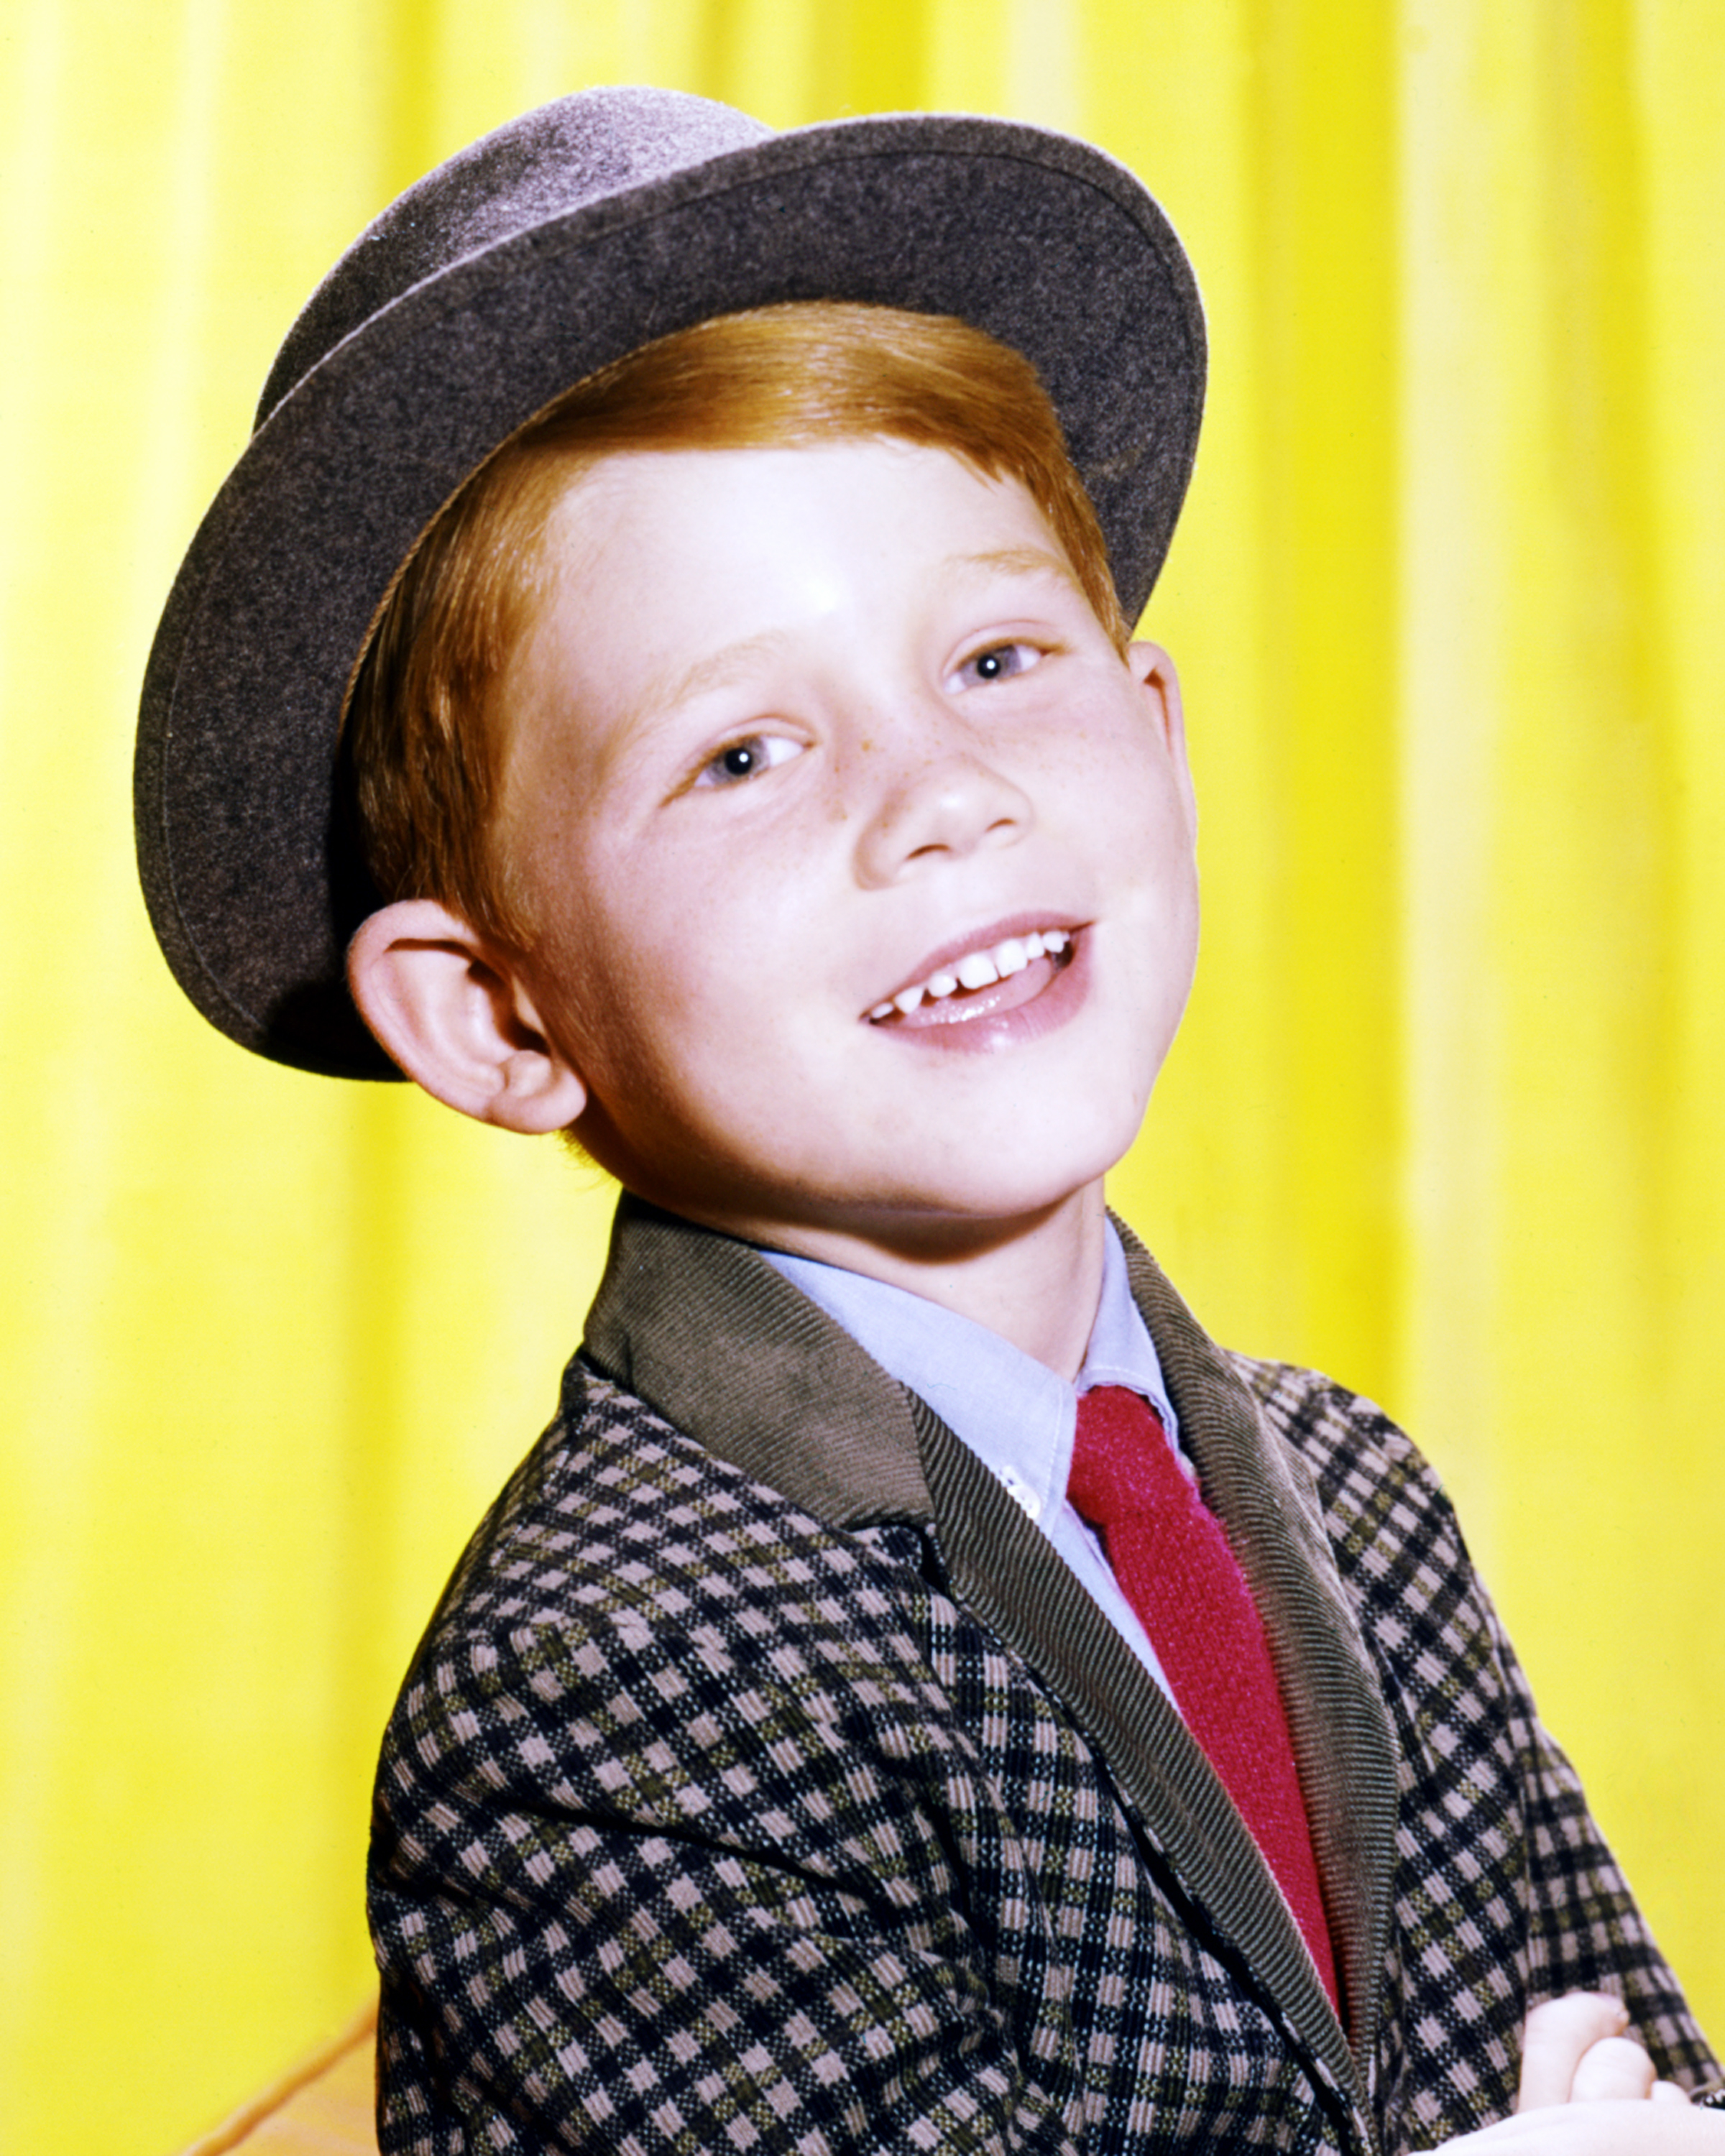 Beloved Child Stars Where Are They Now Famous Child Actors Today